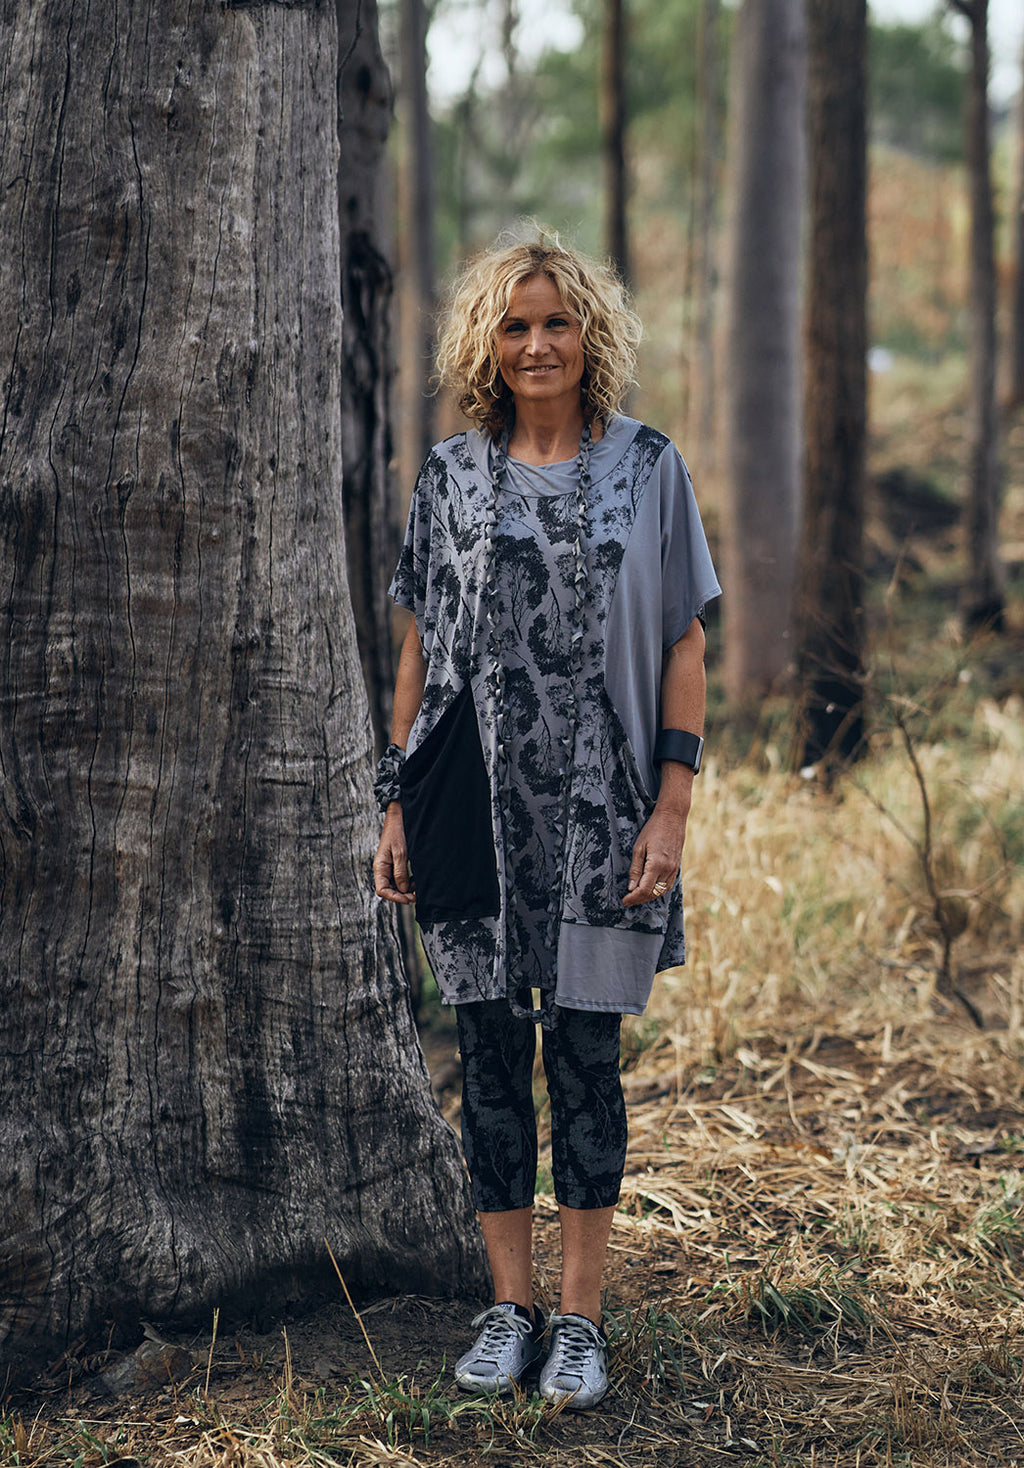 boutique womens clothing online, sustainable fashion, australian made bamboo dresses, australian fashion designers